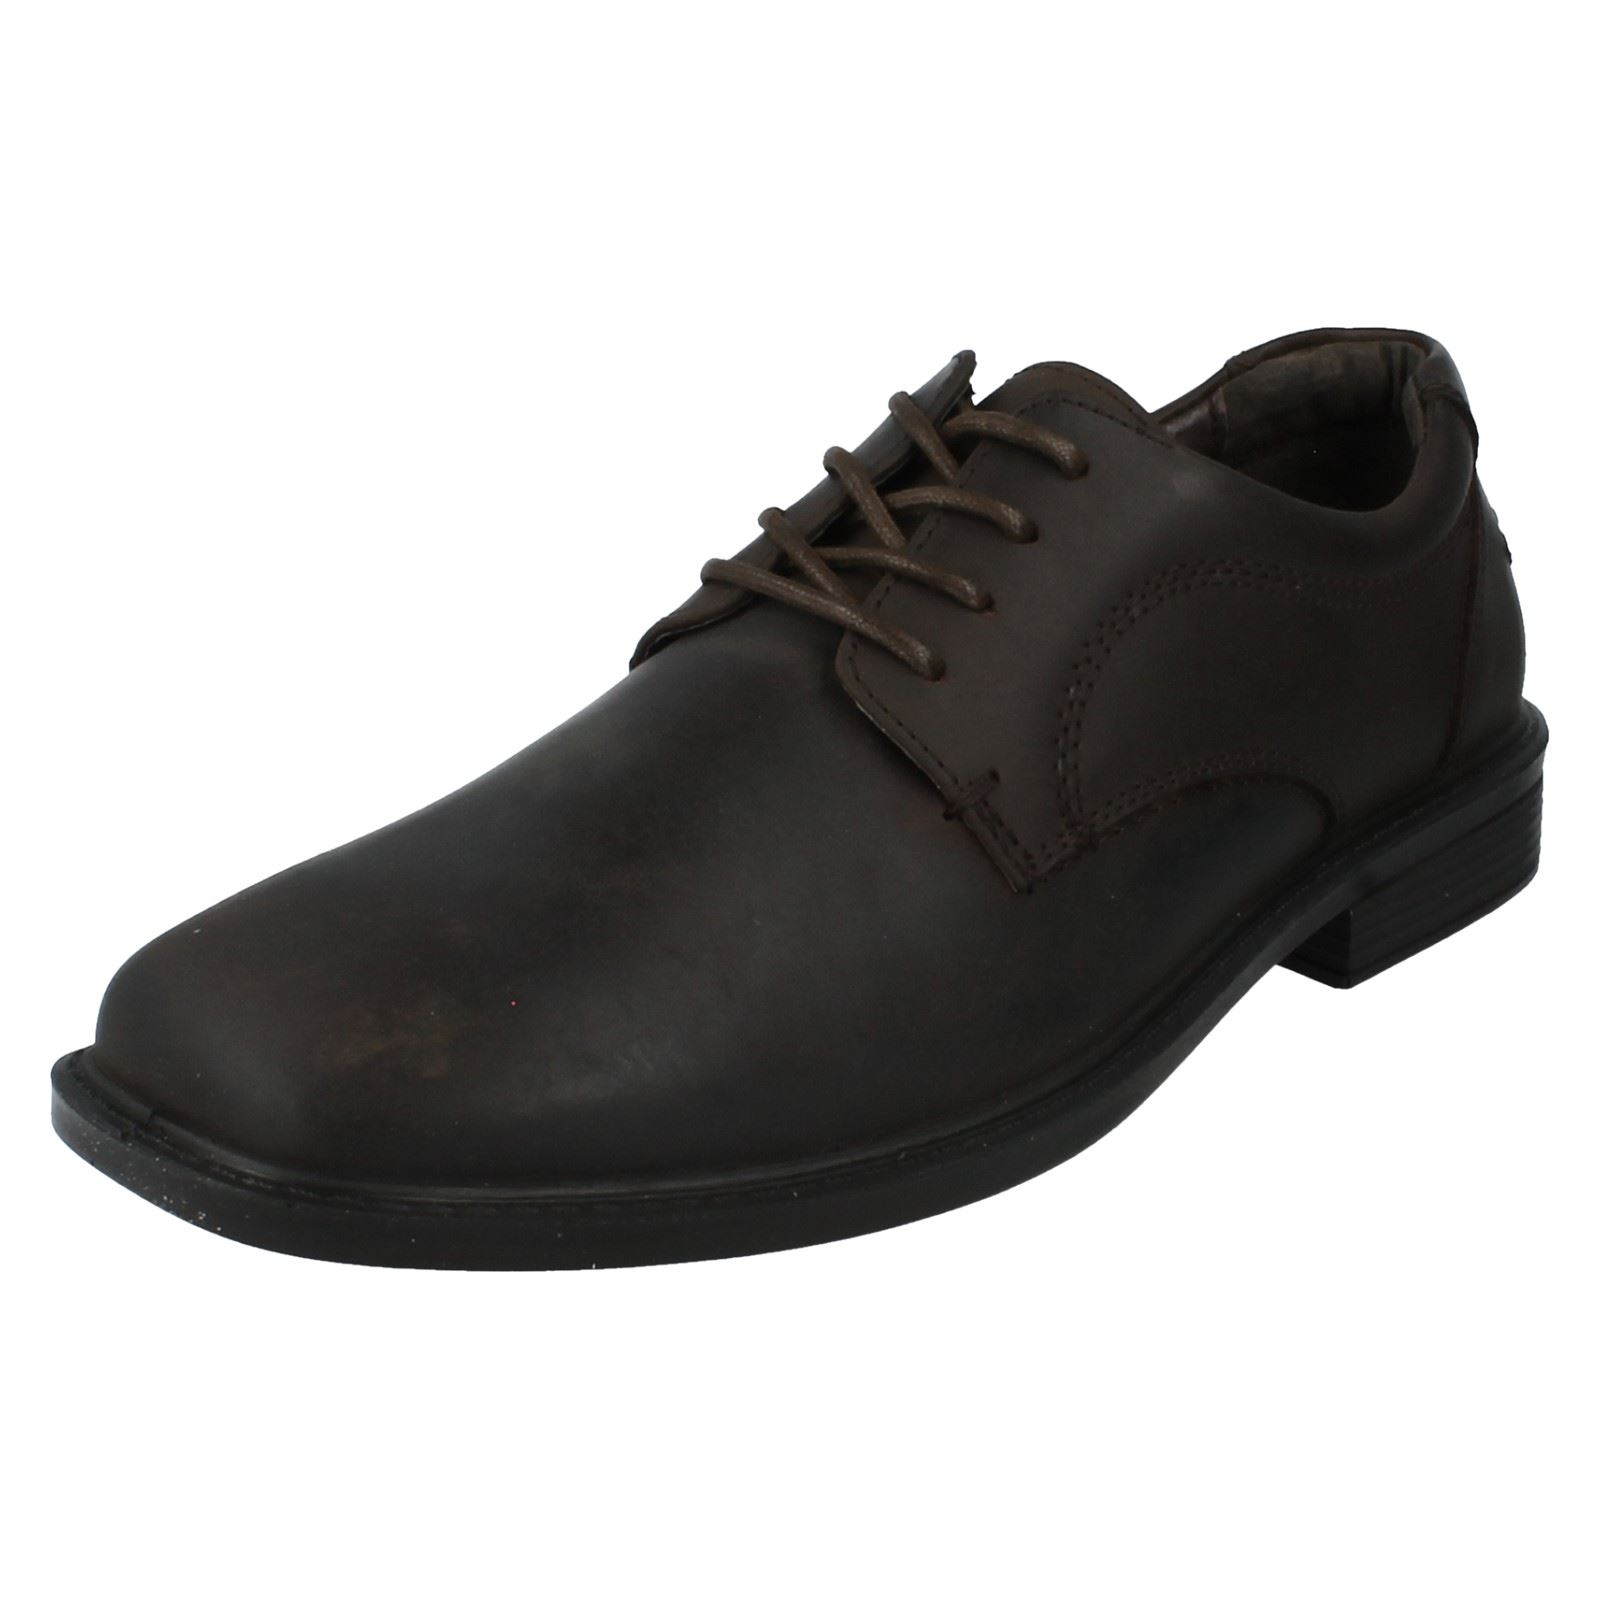 Hombre Hush Hush Hush Puppies Casual Zapatos Label Norwich HP 645b90